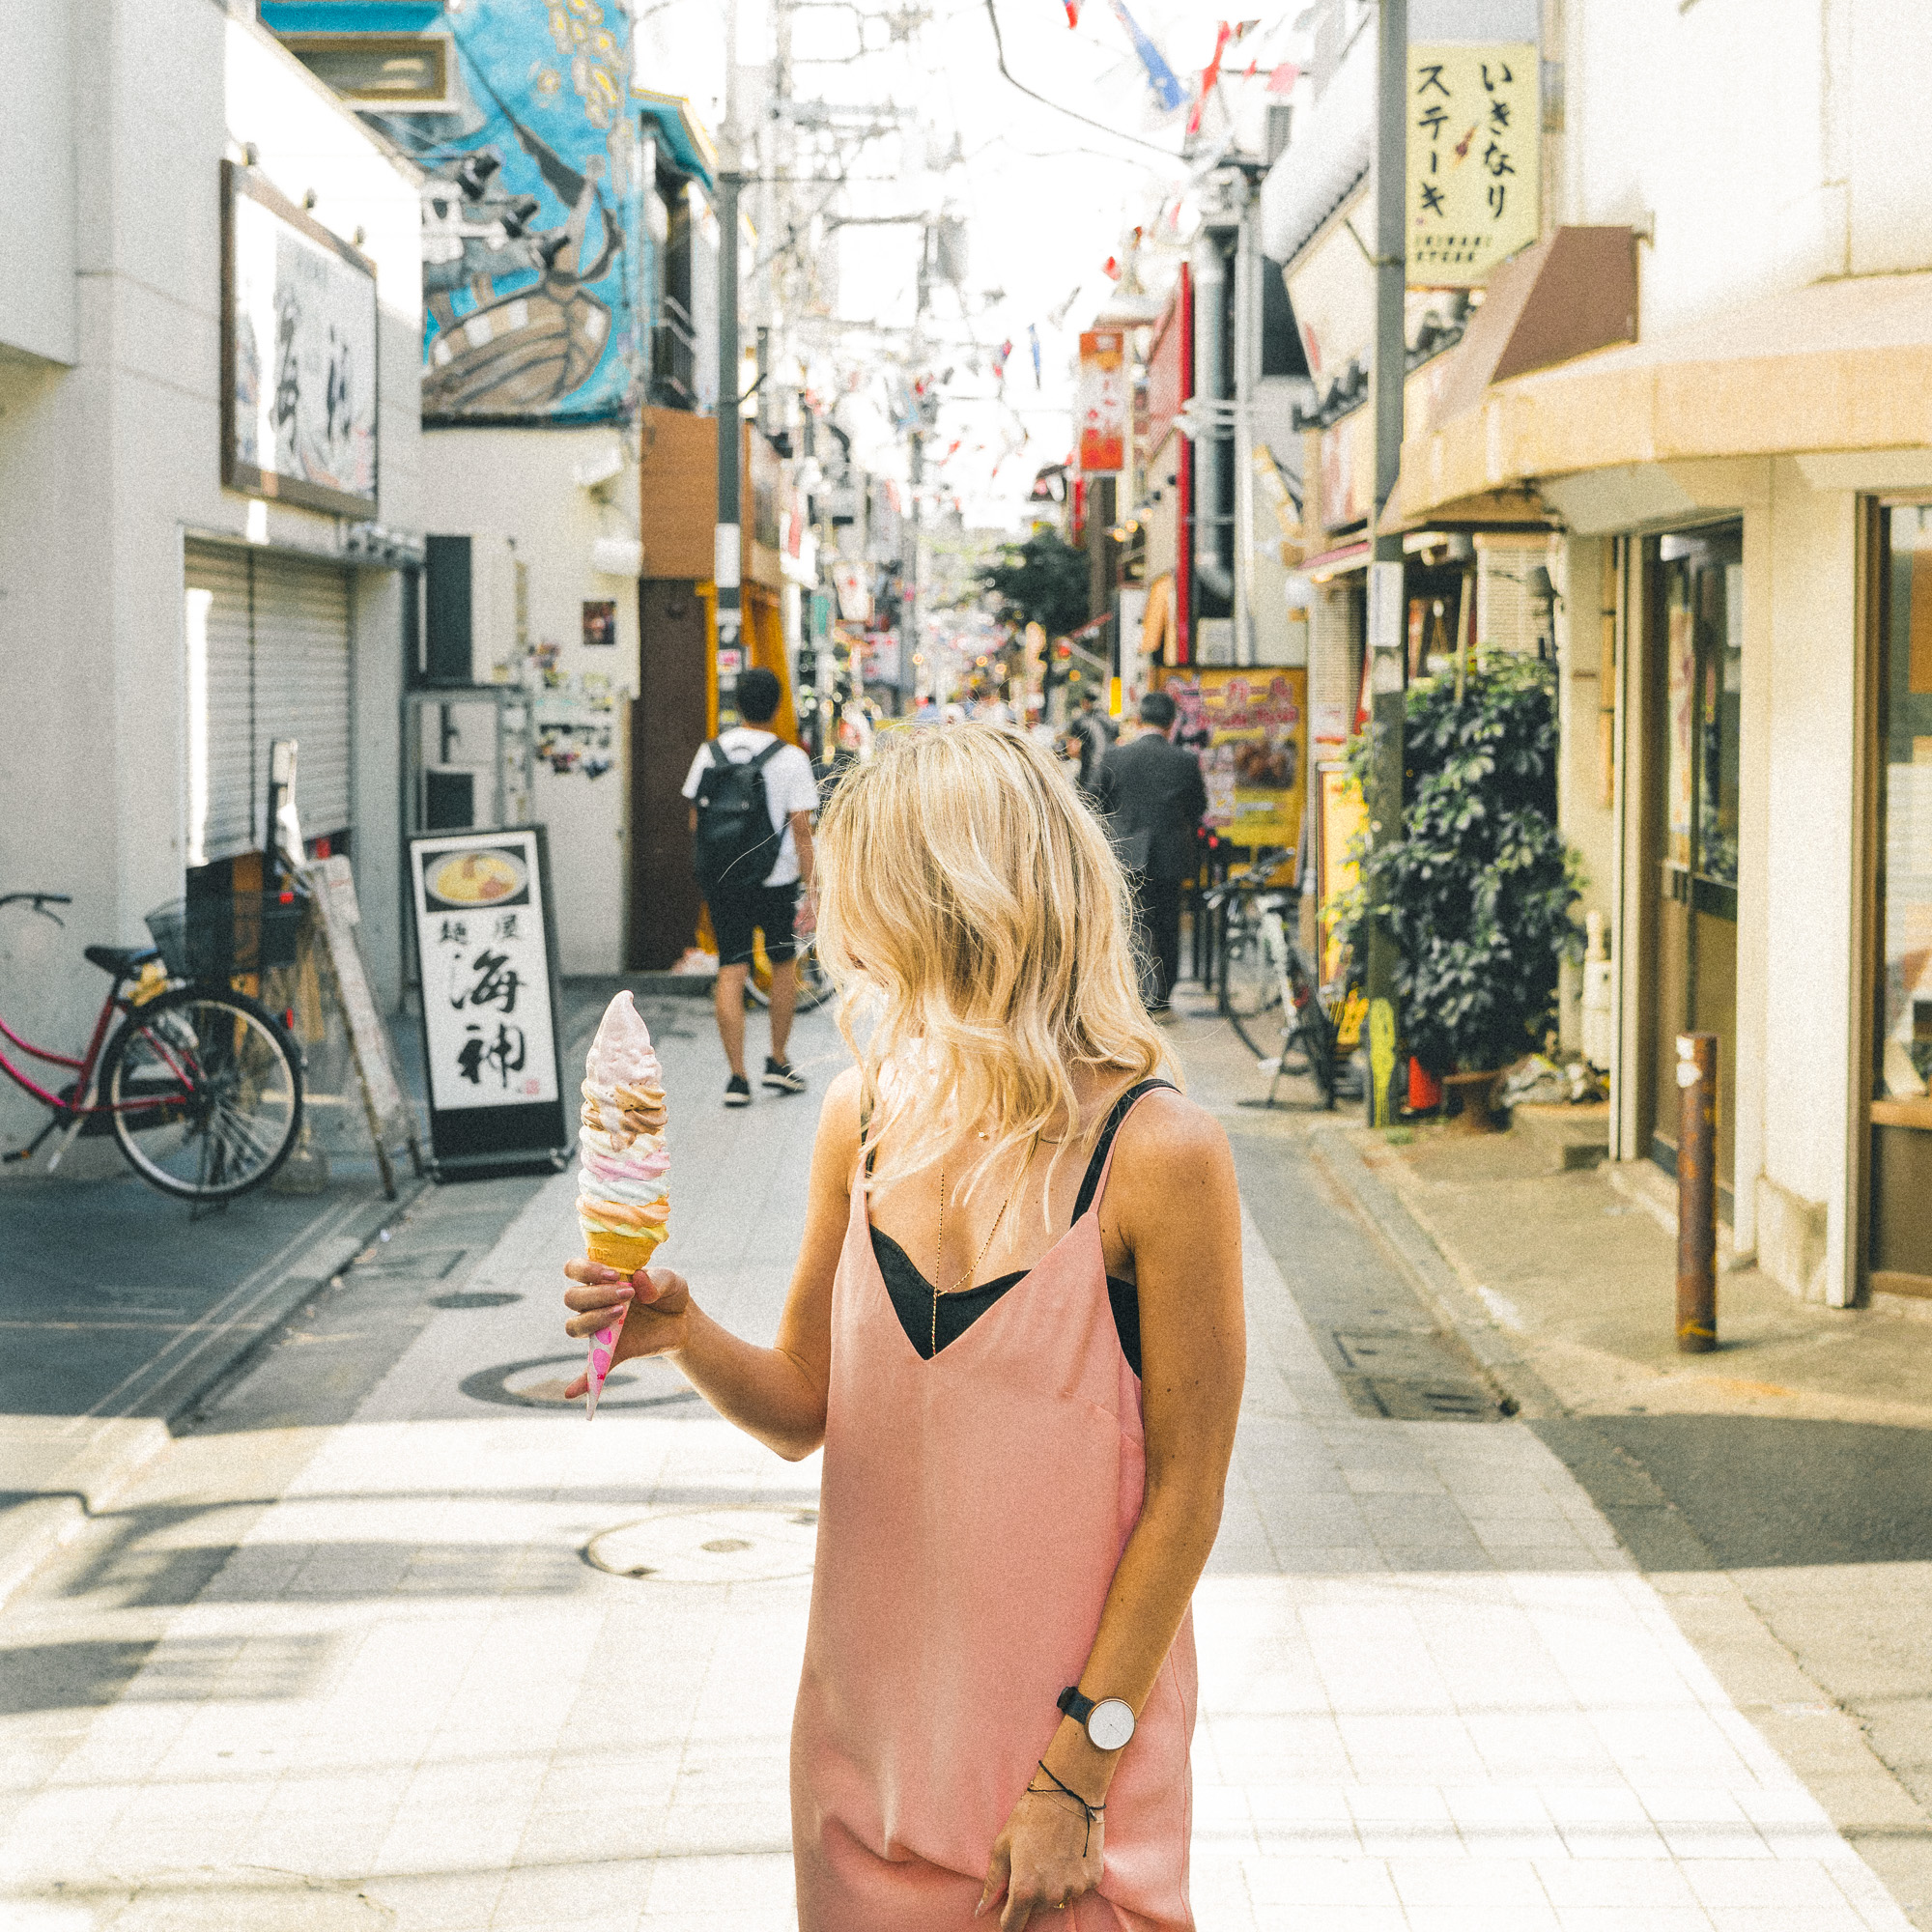 The Complete Tokyo Travel Guide | City Guides | Japan Travel Itinerary | Daily Chico 8 flavor ice cream cone | Neighborhood Travel Tips